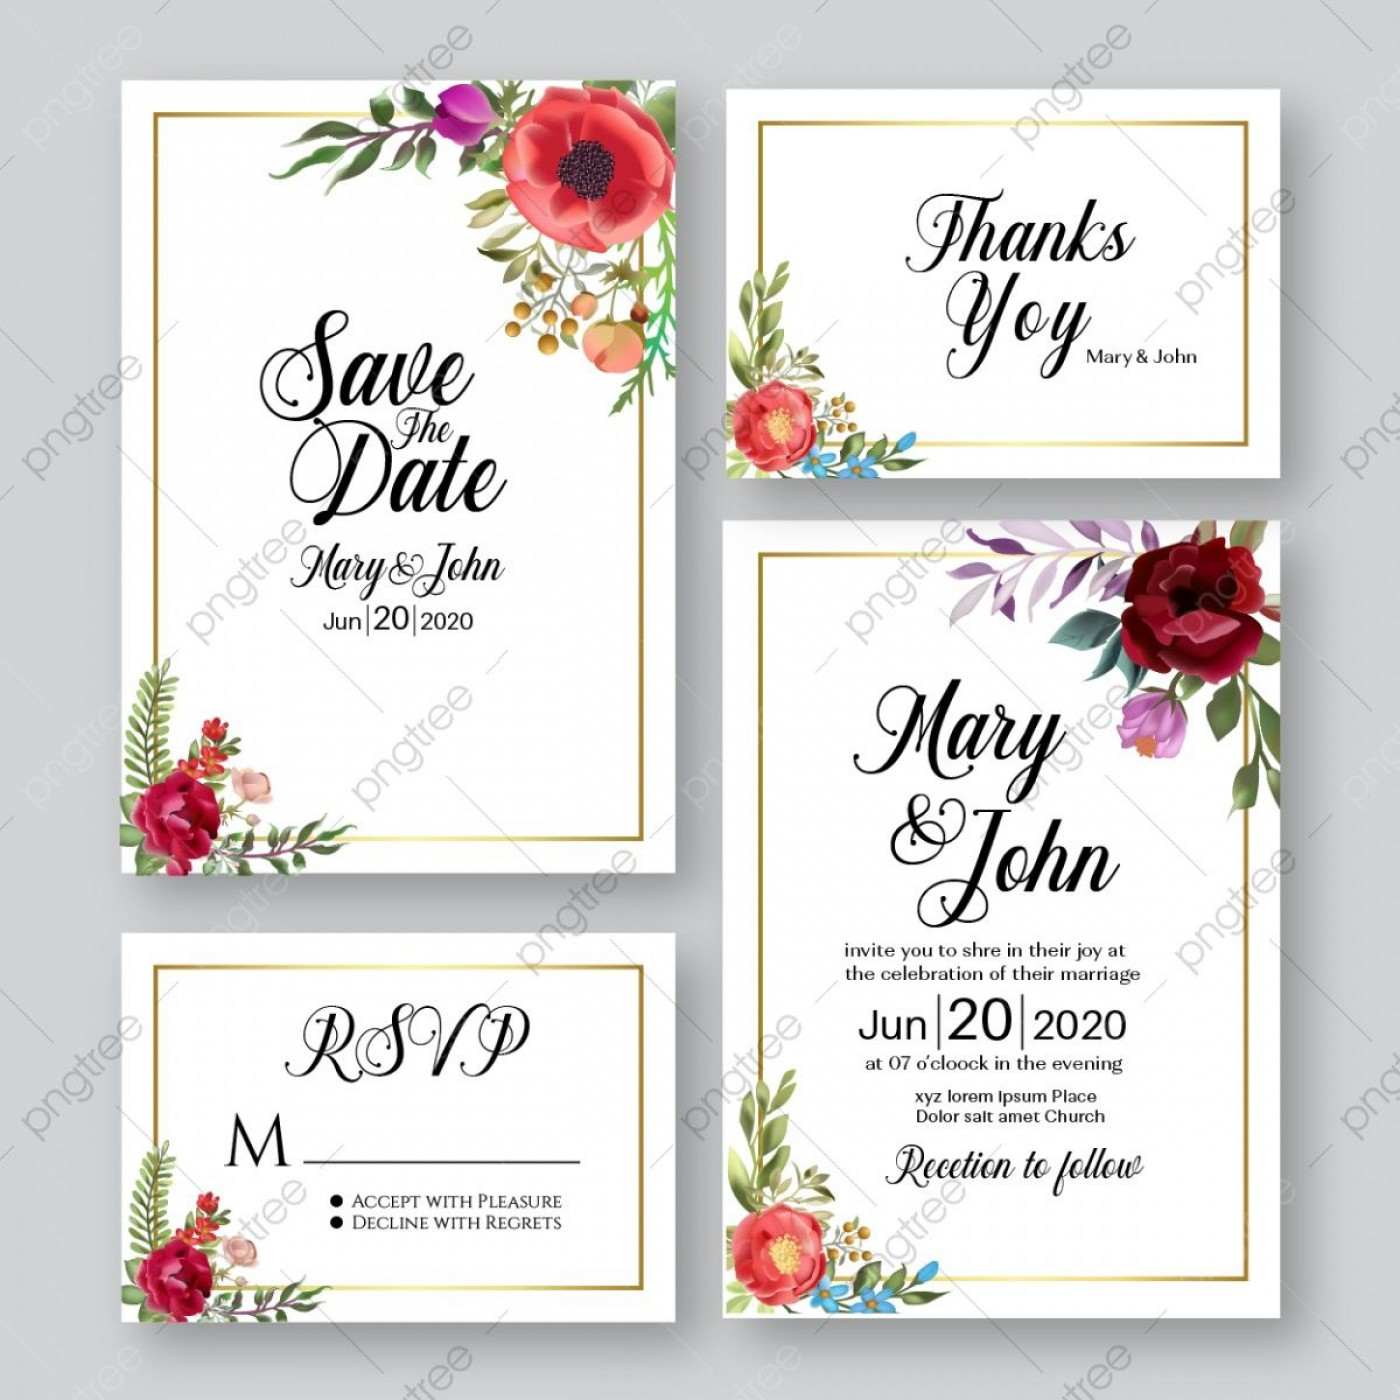 009 Excellent Free Download Invitation Card Template Highest Clarity  Wedding Design Software For Pc Psd1400